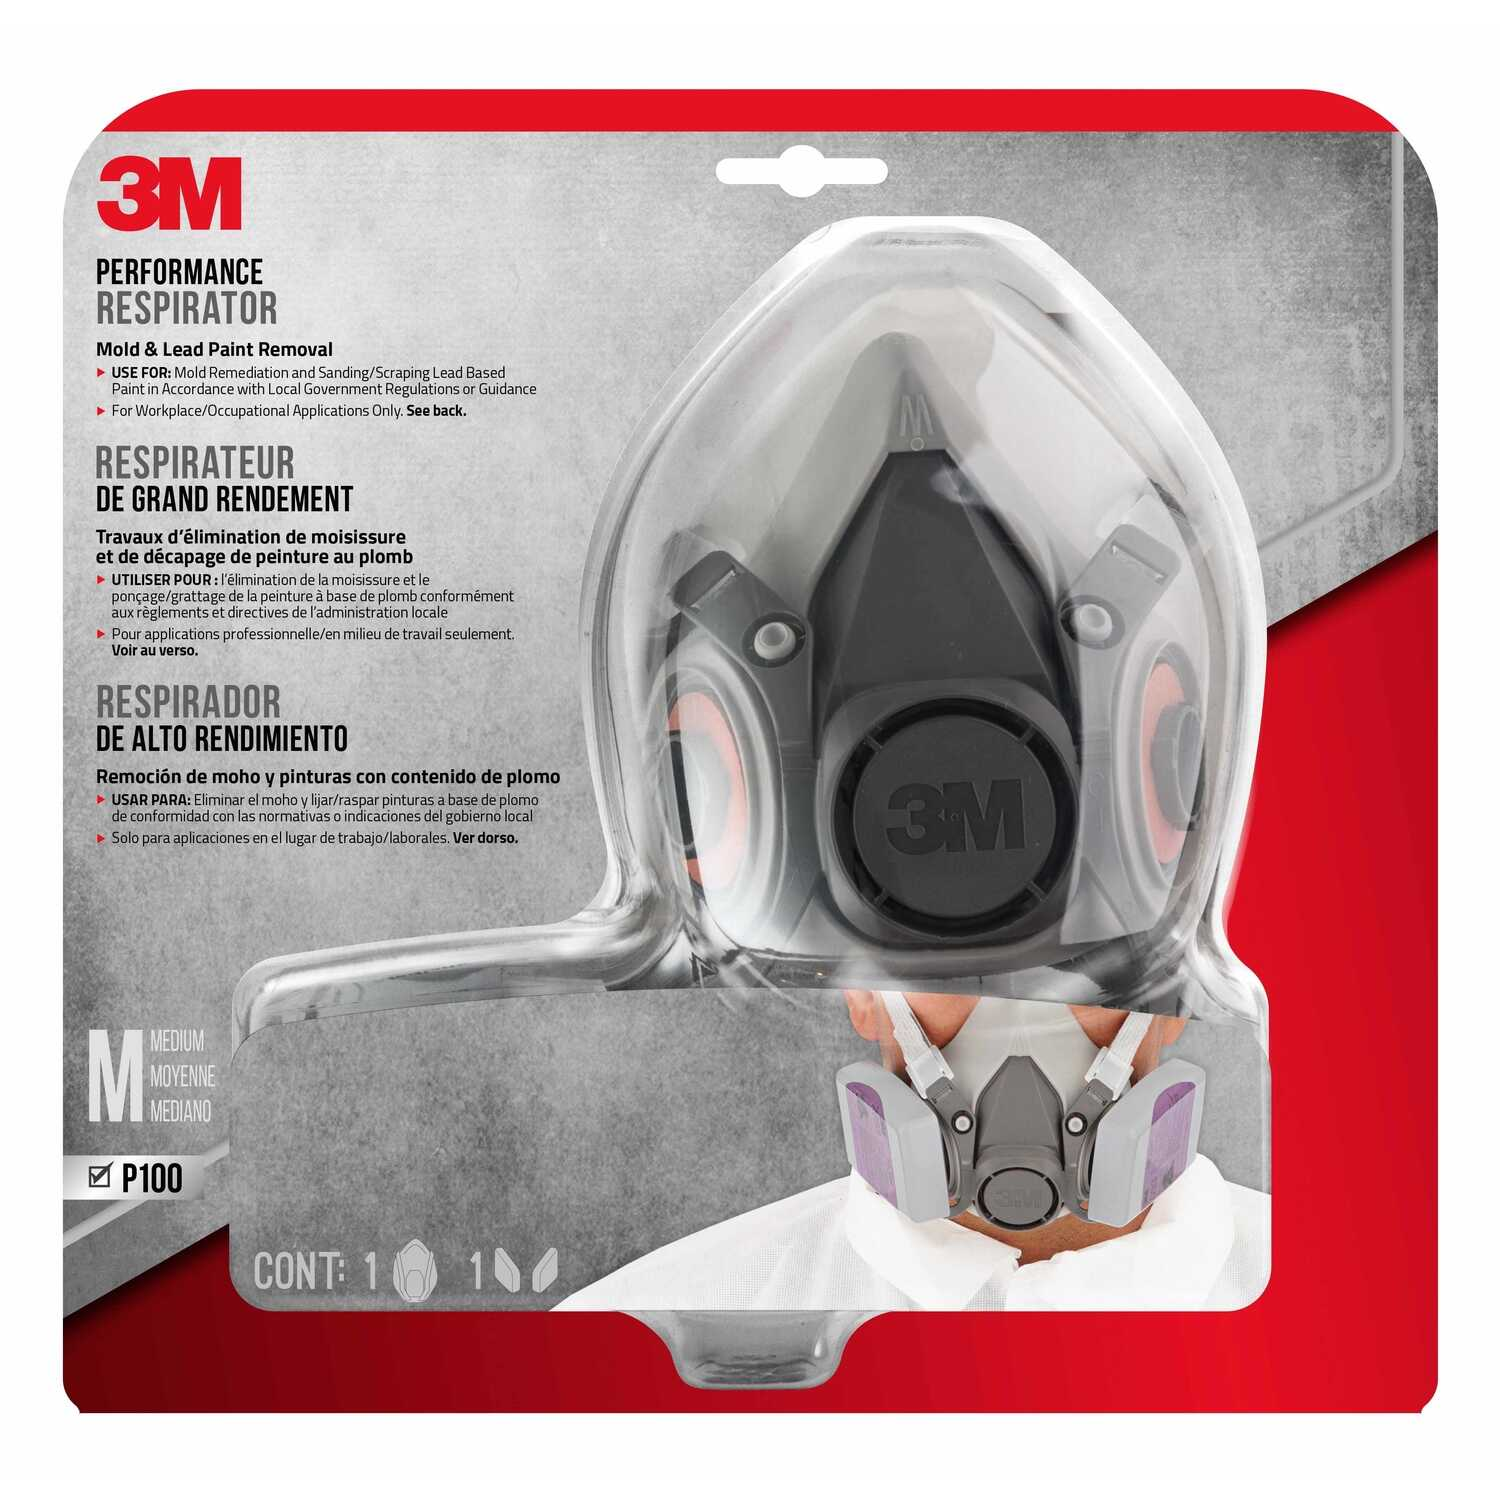 3M  P100  Sanding and Lead Paint Removal  Half Face Respirator  Gray  1 pc.